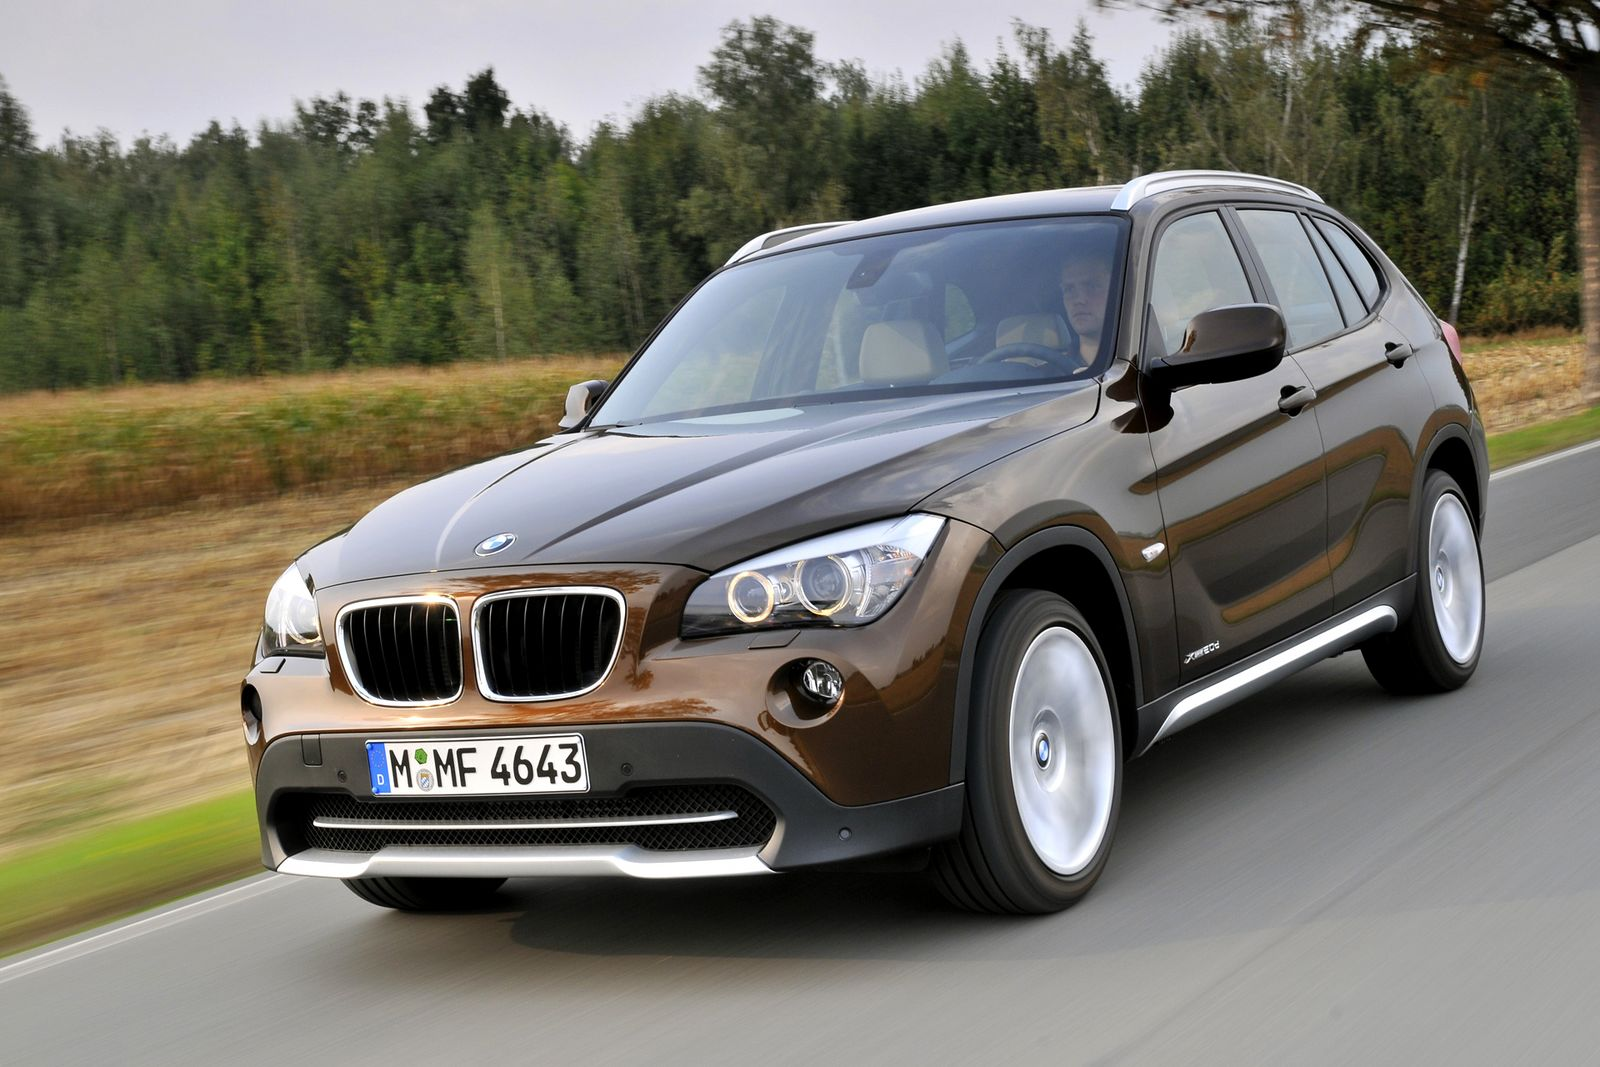 bmw x1 images #6